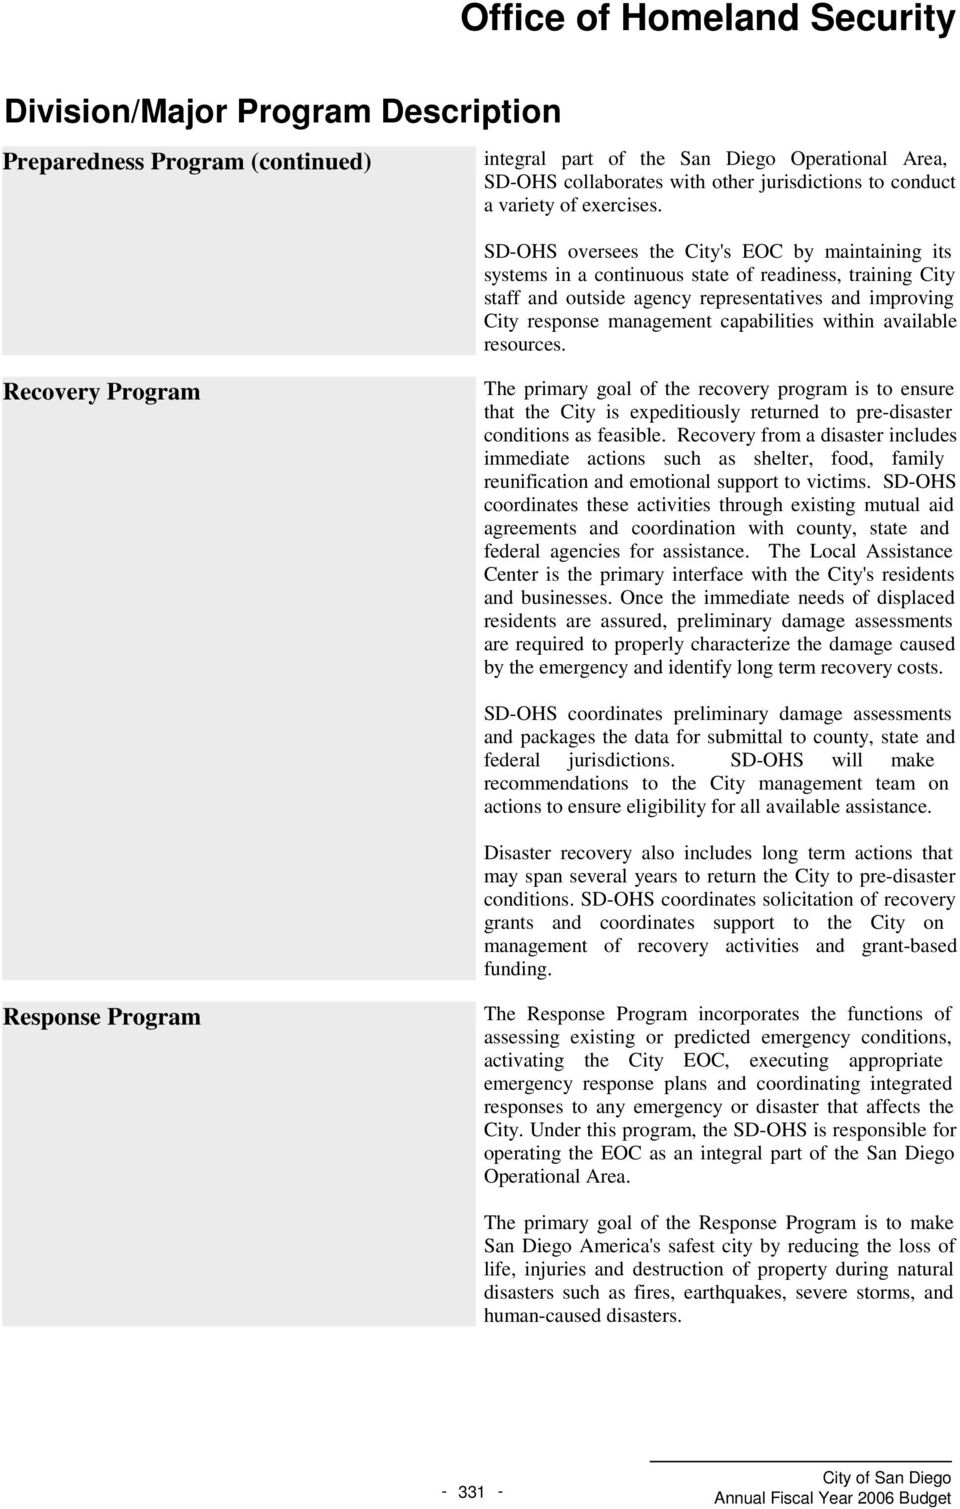 within available resources. Recovery Program The primary goal of the recovery program is to ensure that the City is expeditiously returned to predisaster conditions as feasible.